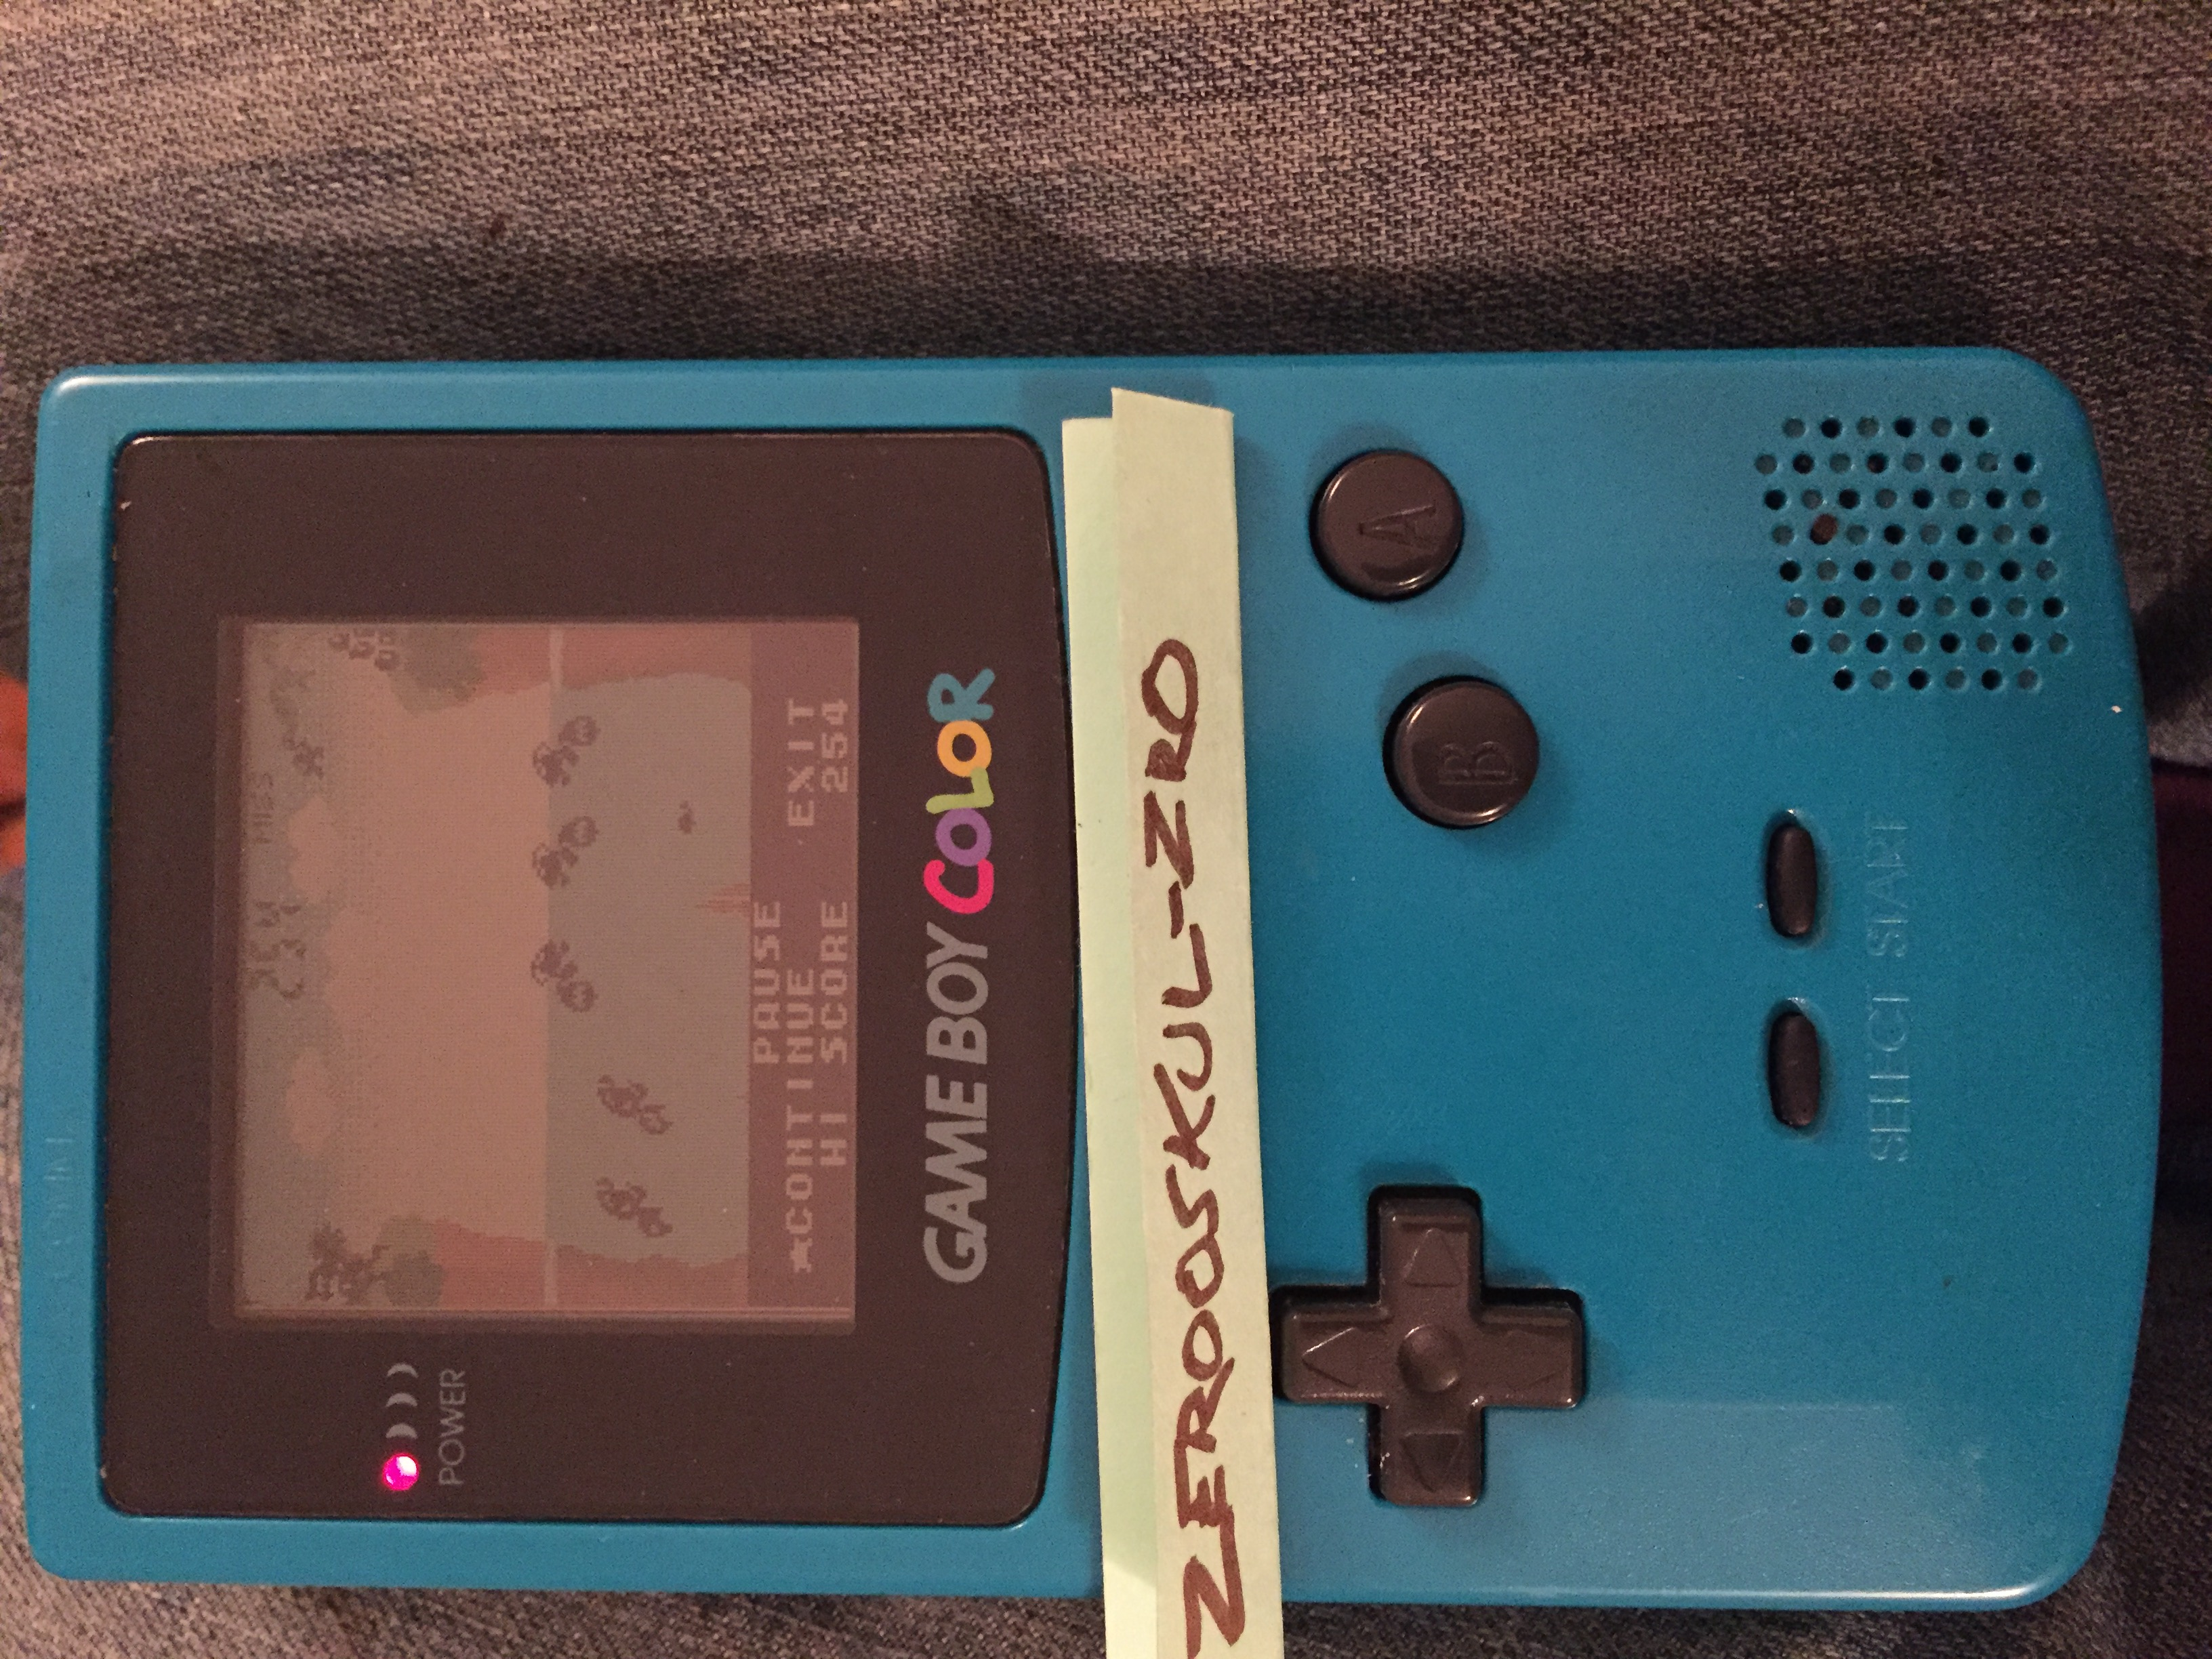 zerooskul: Game & Watch Gallery 3: Turtle Bridge: Classic: Hard (Game Boy Color) 322 points on 2018-07-01 21:29:06